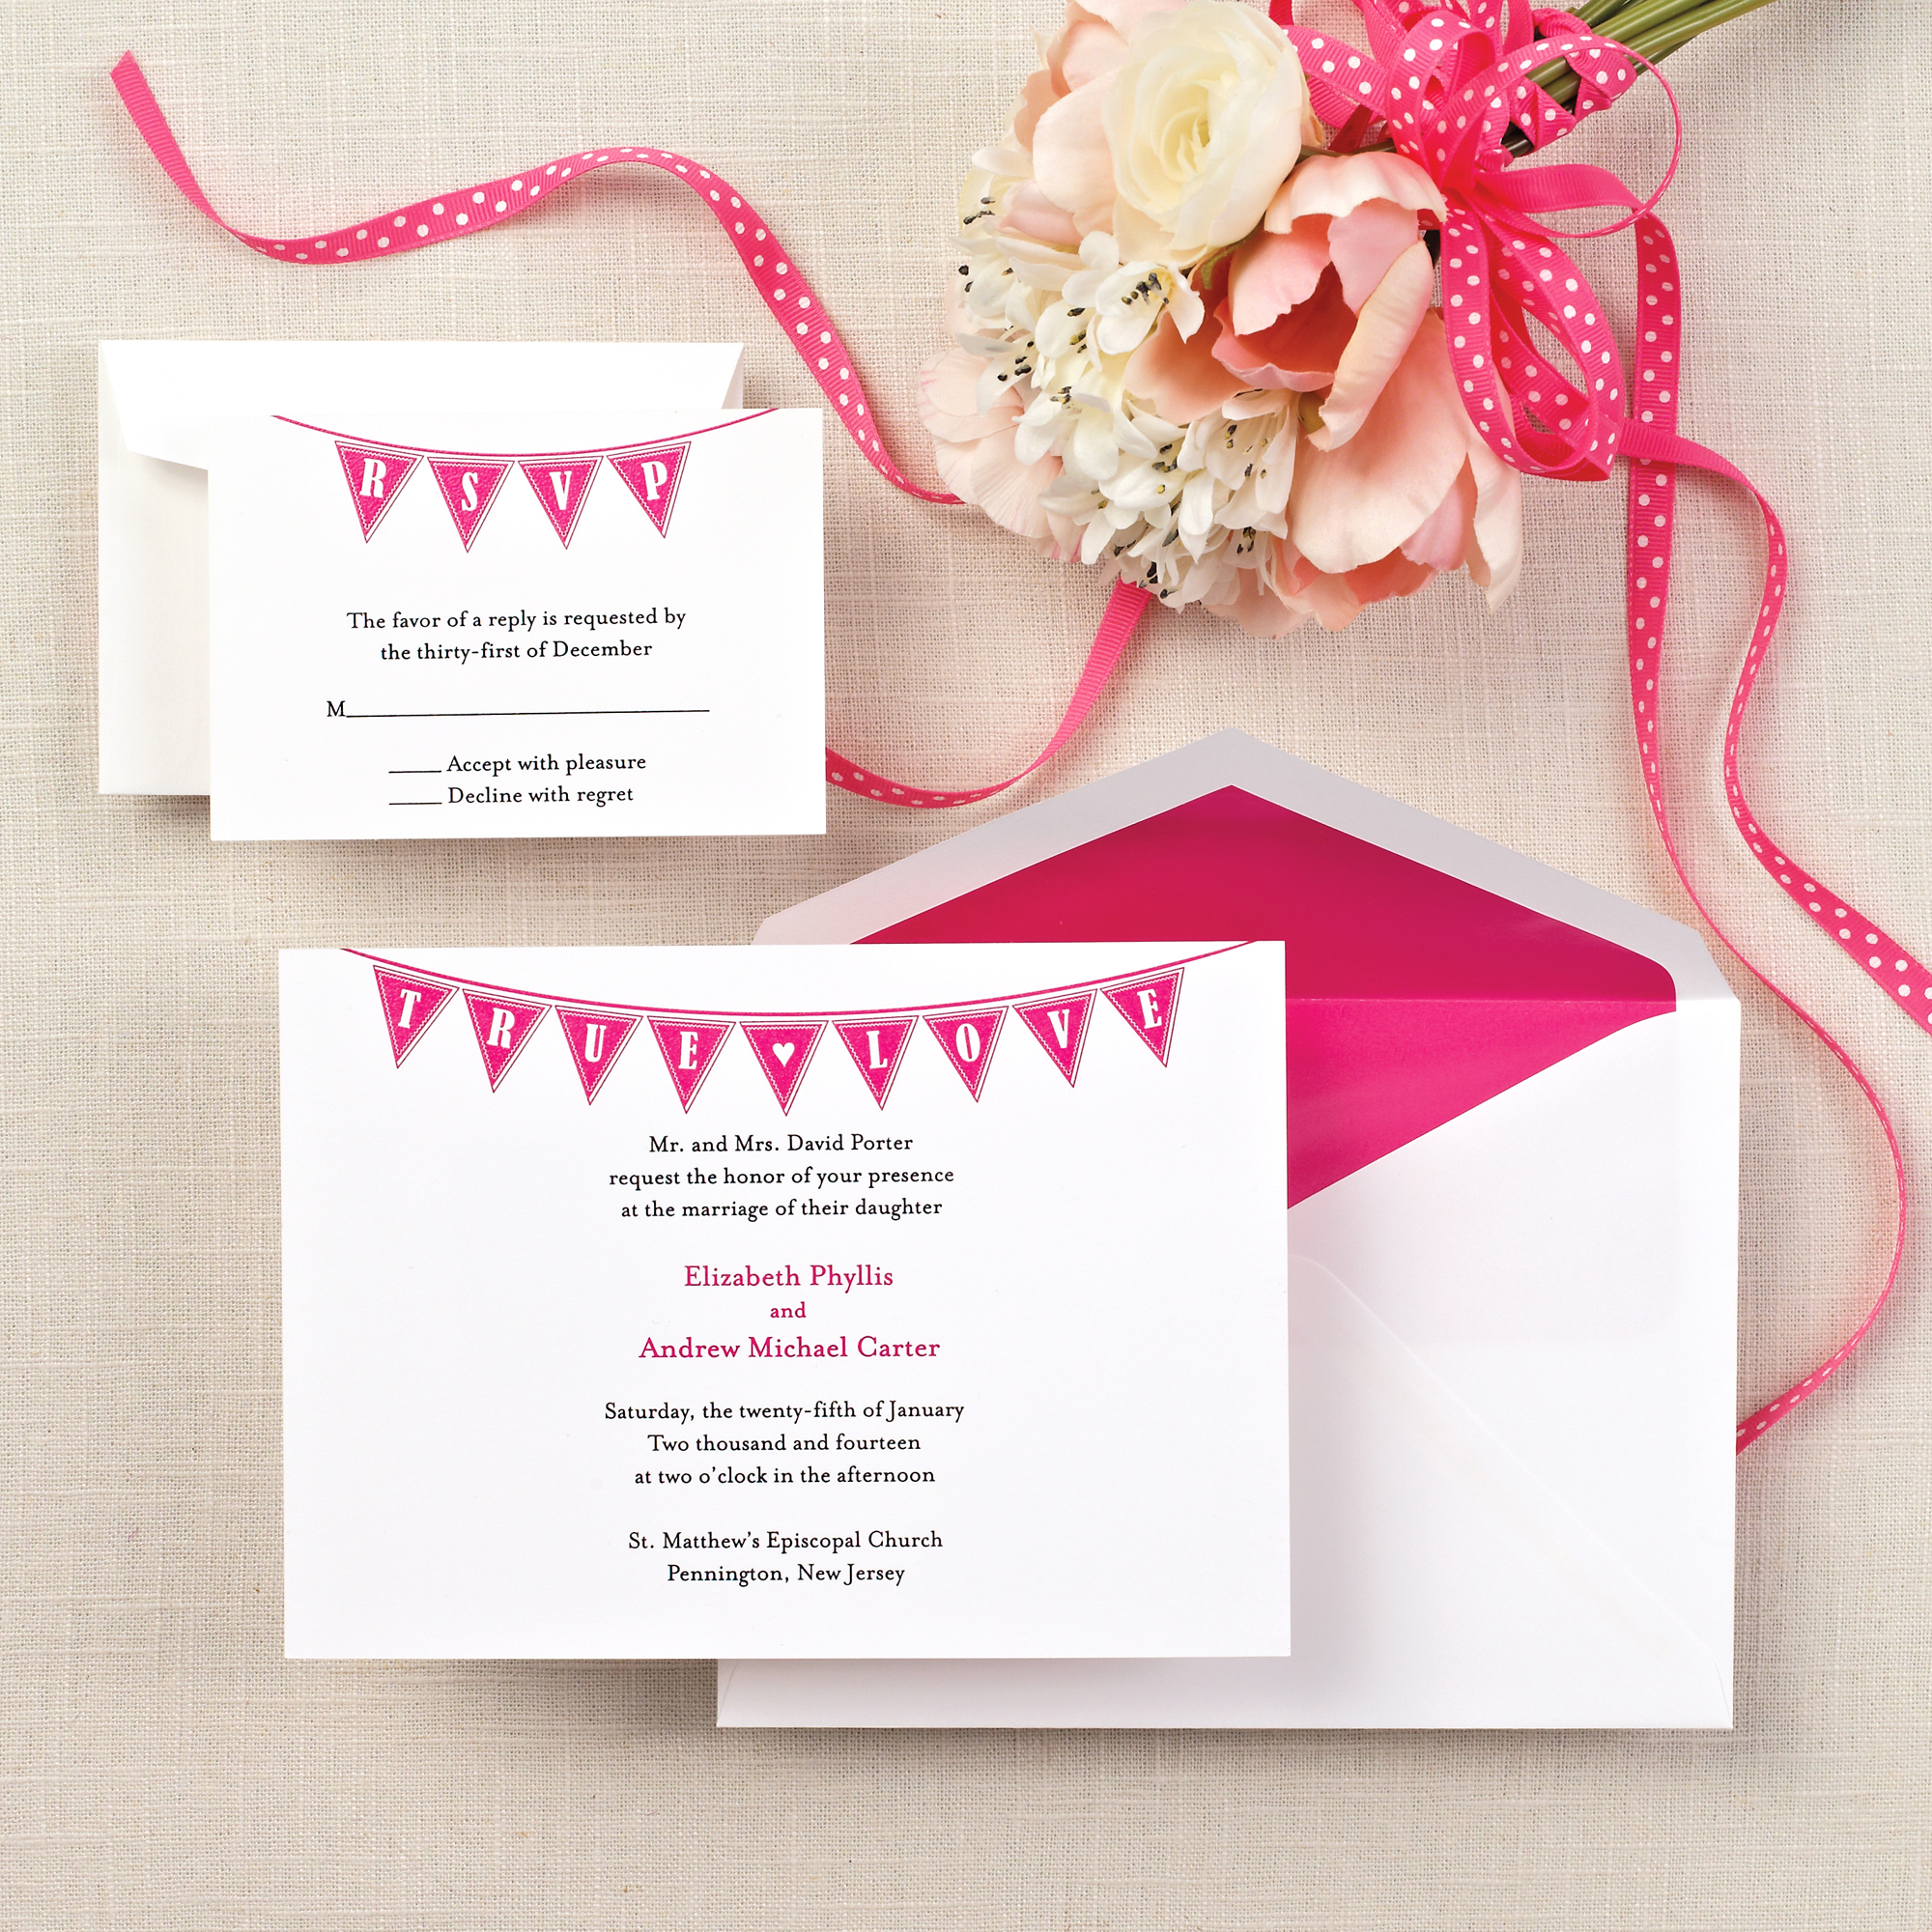 How to Choose Your Wedding Invitation | Exclusively Weddings